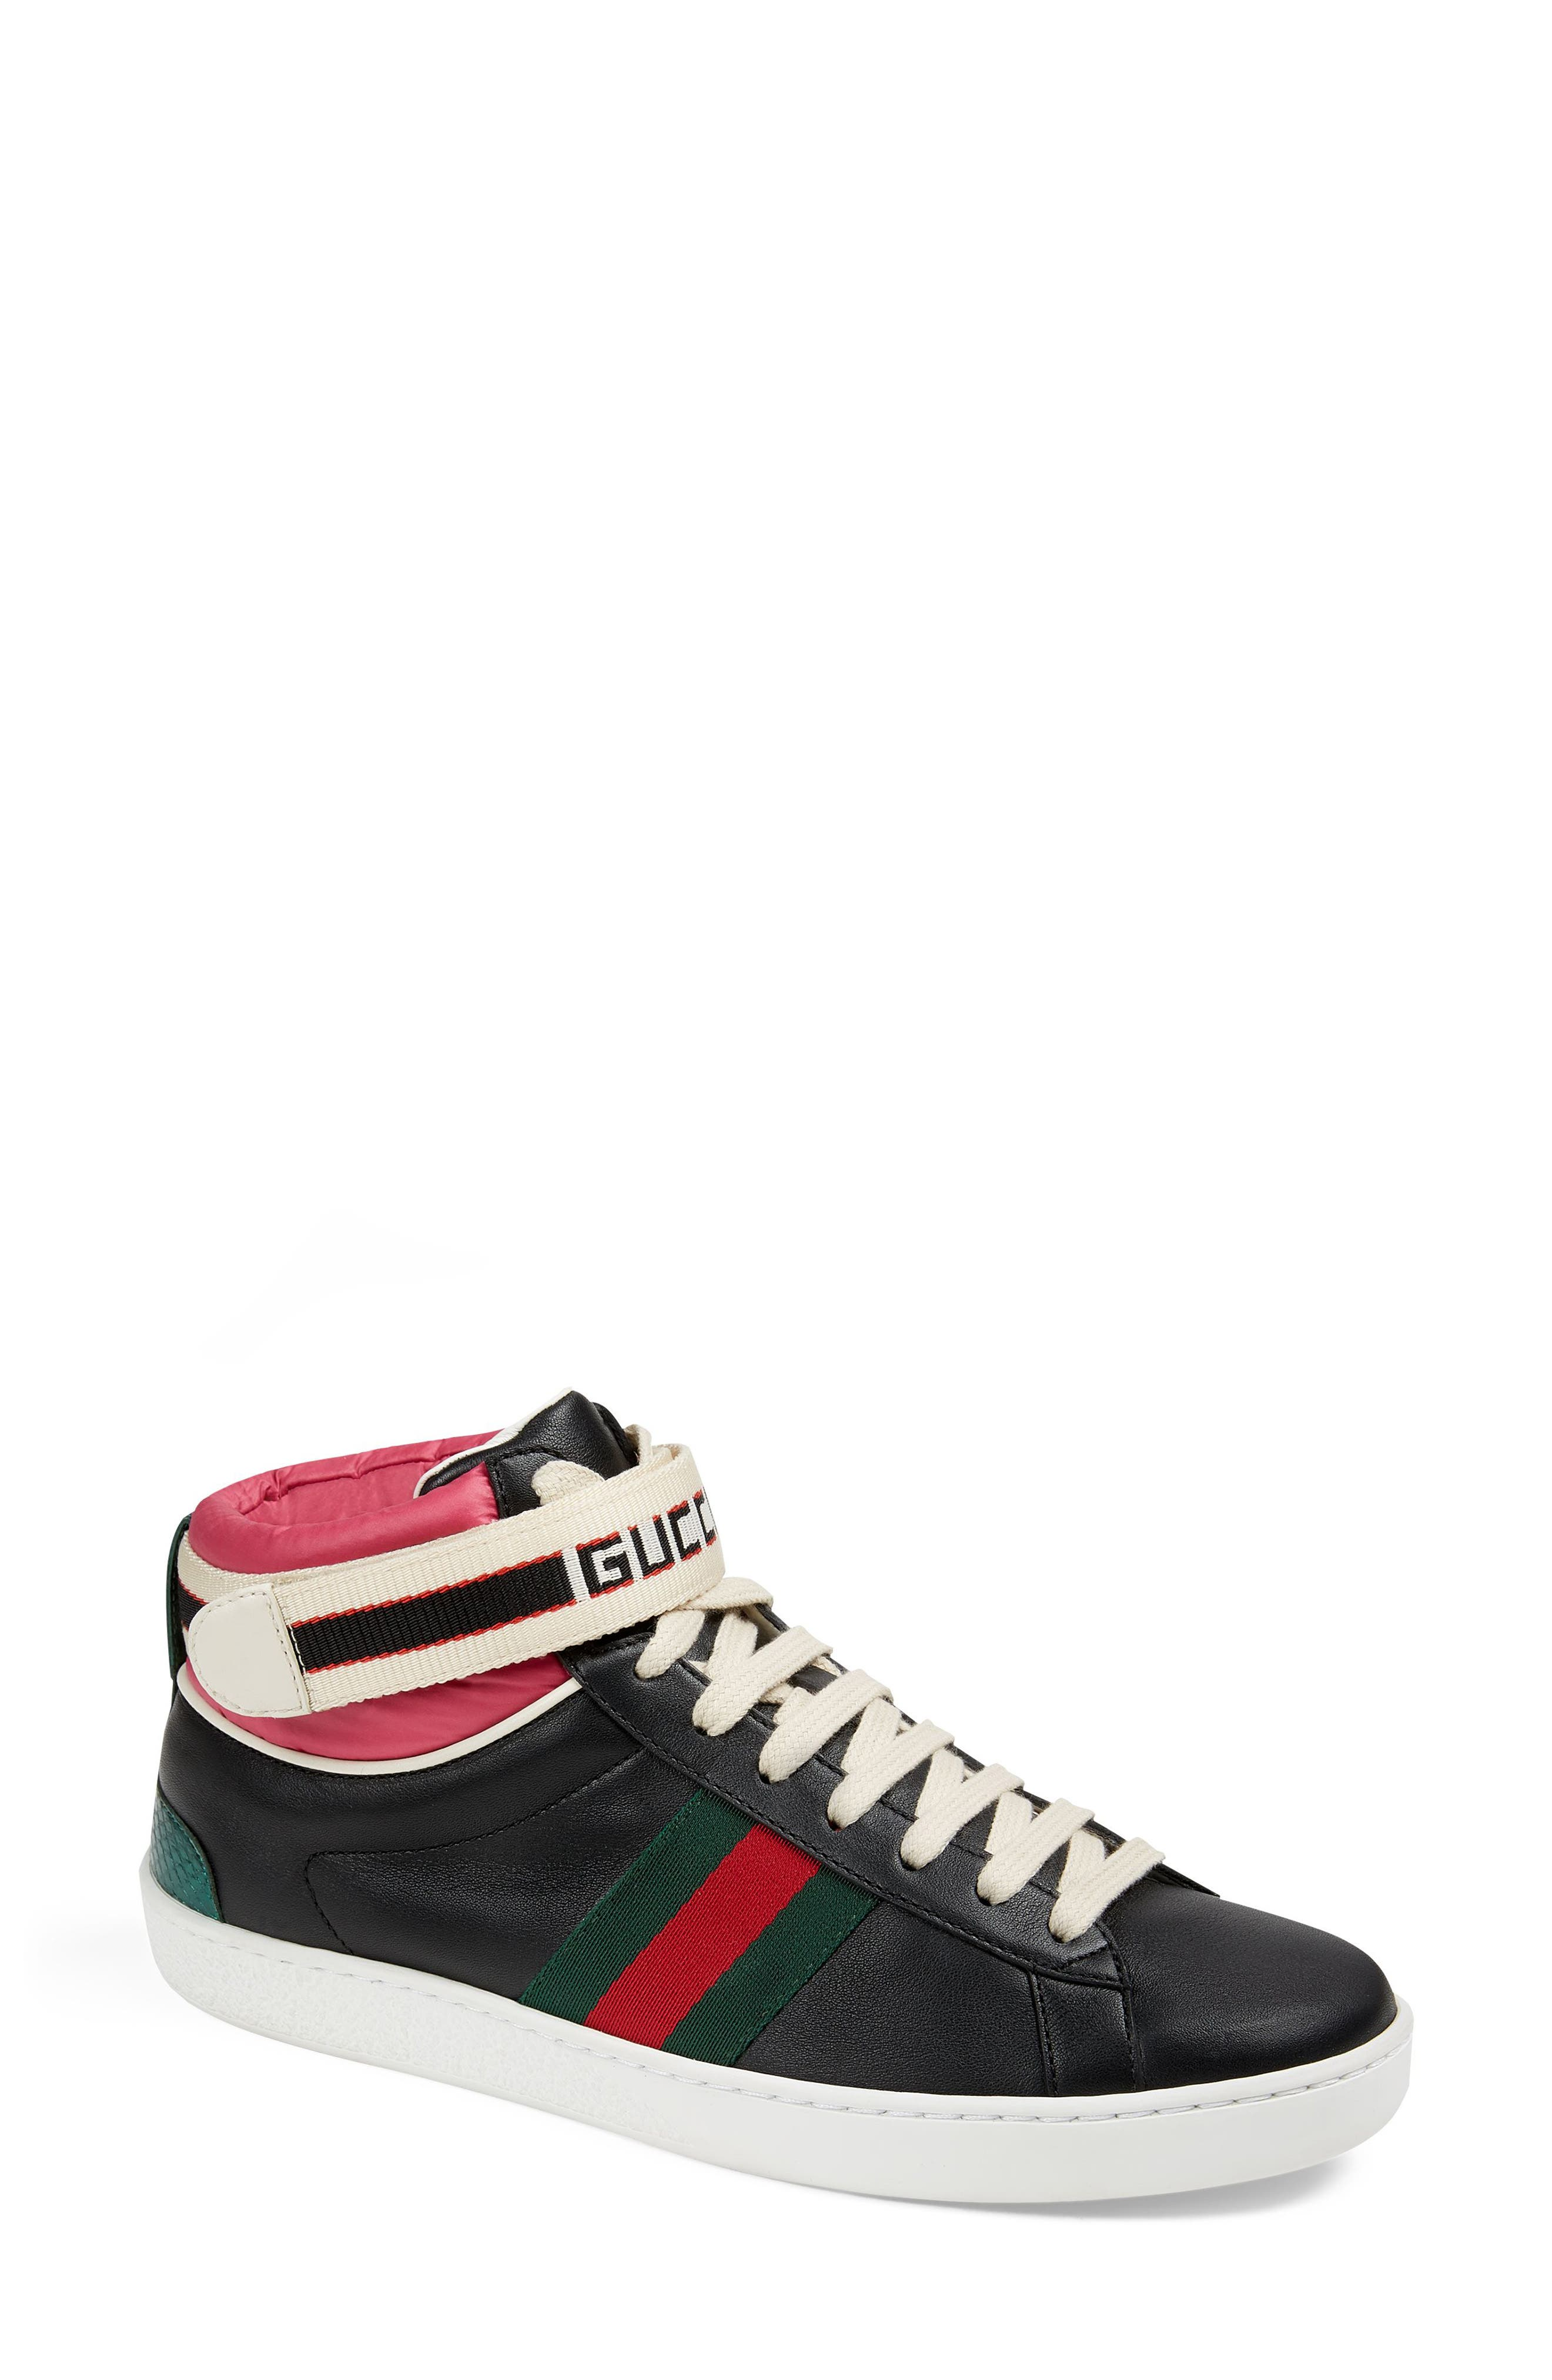 New Ace High Top Sneaker with Genuine Snakeskin Trim,                         Main,                         color, Black